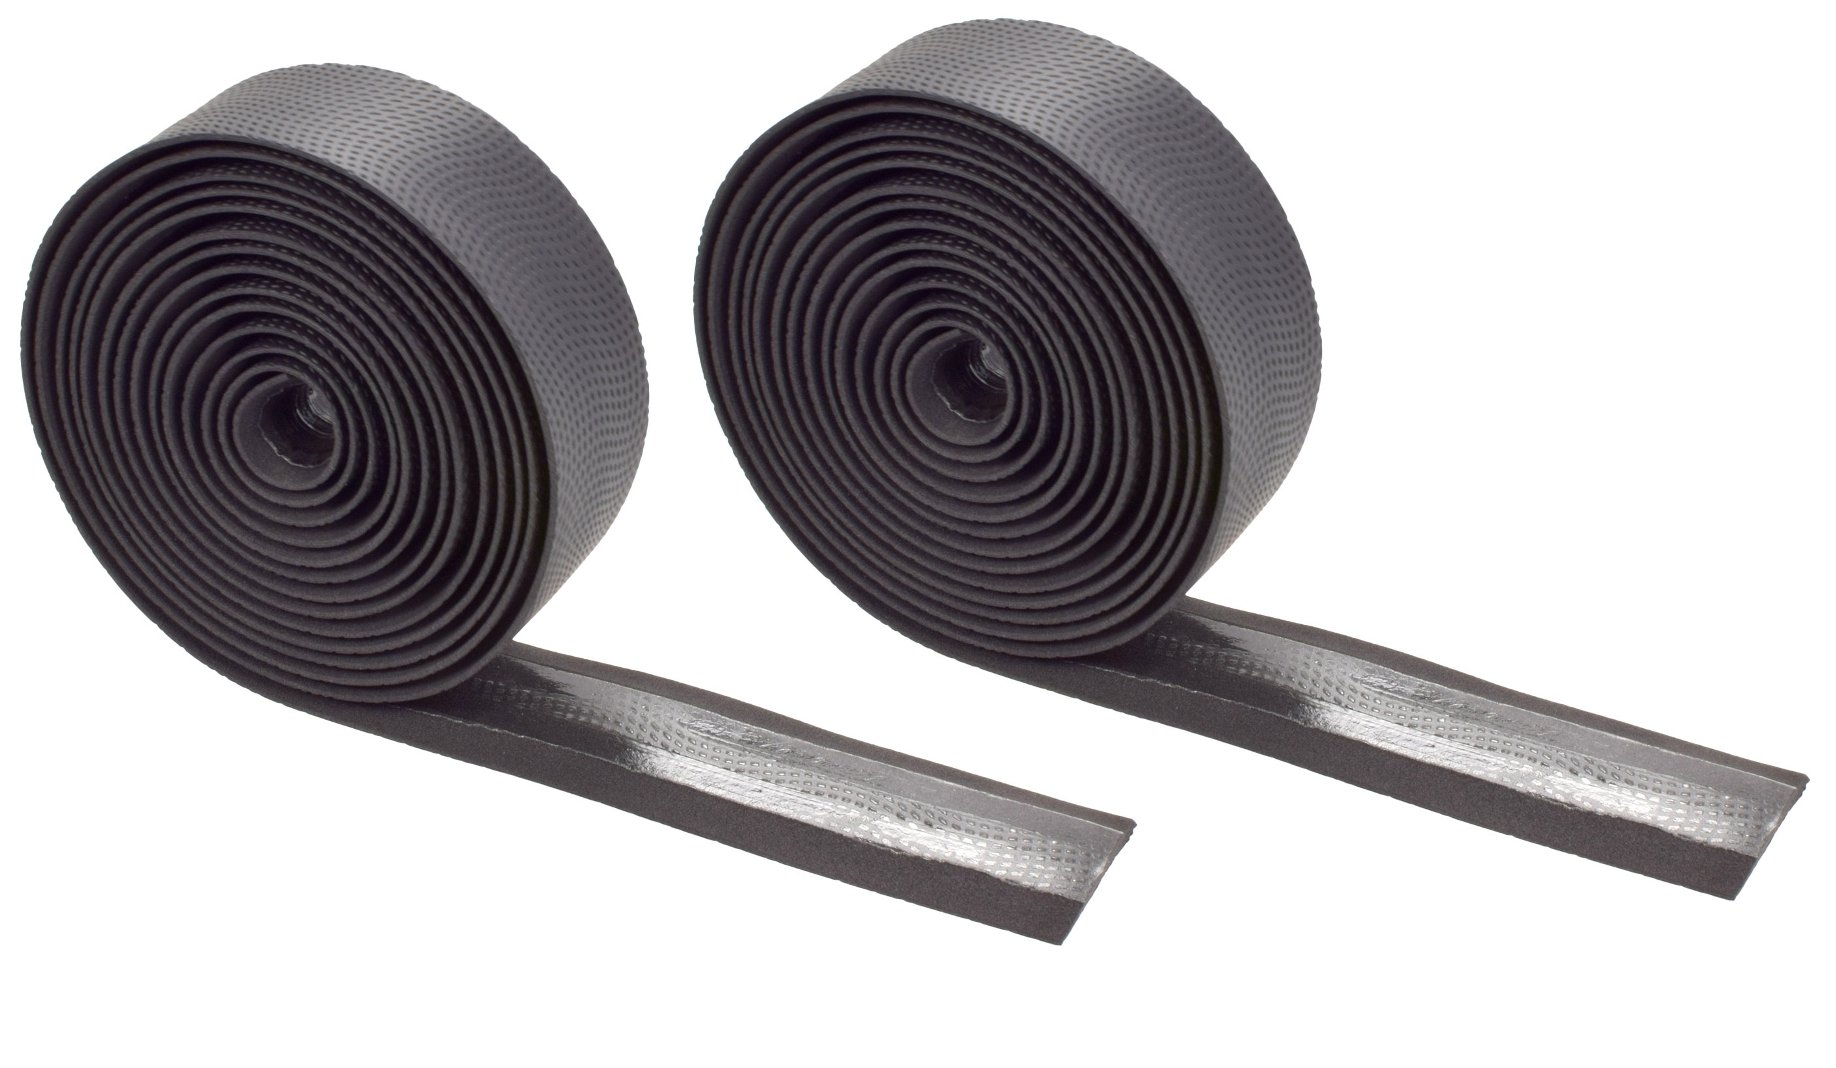 c2272681c6c Domain Cycling Extra Long Gel Bicycle Handlebar Bar Tape Wrap for Road  Bikes and Cycling